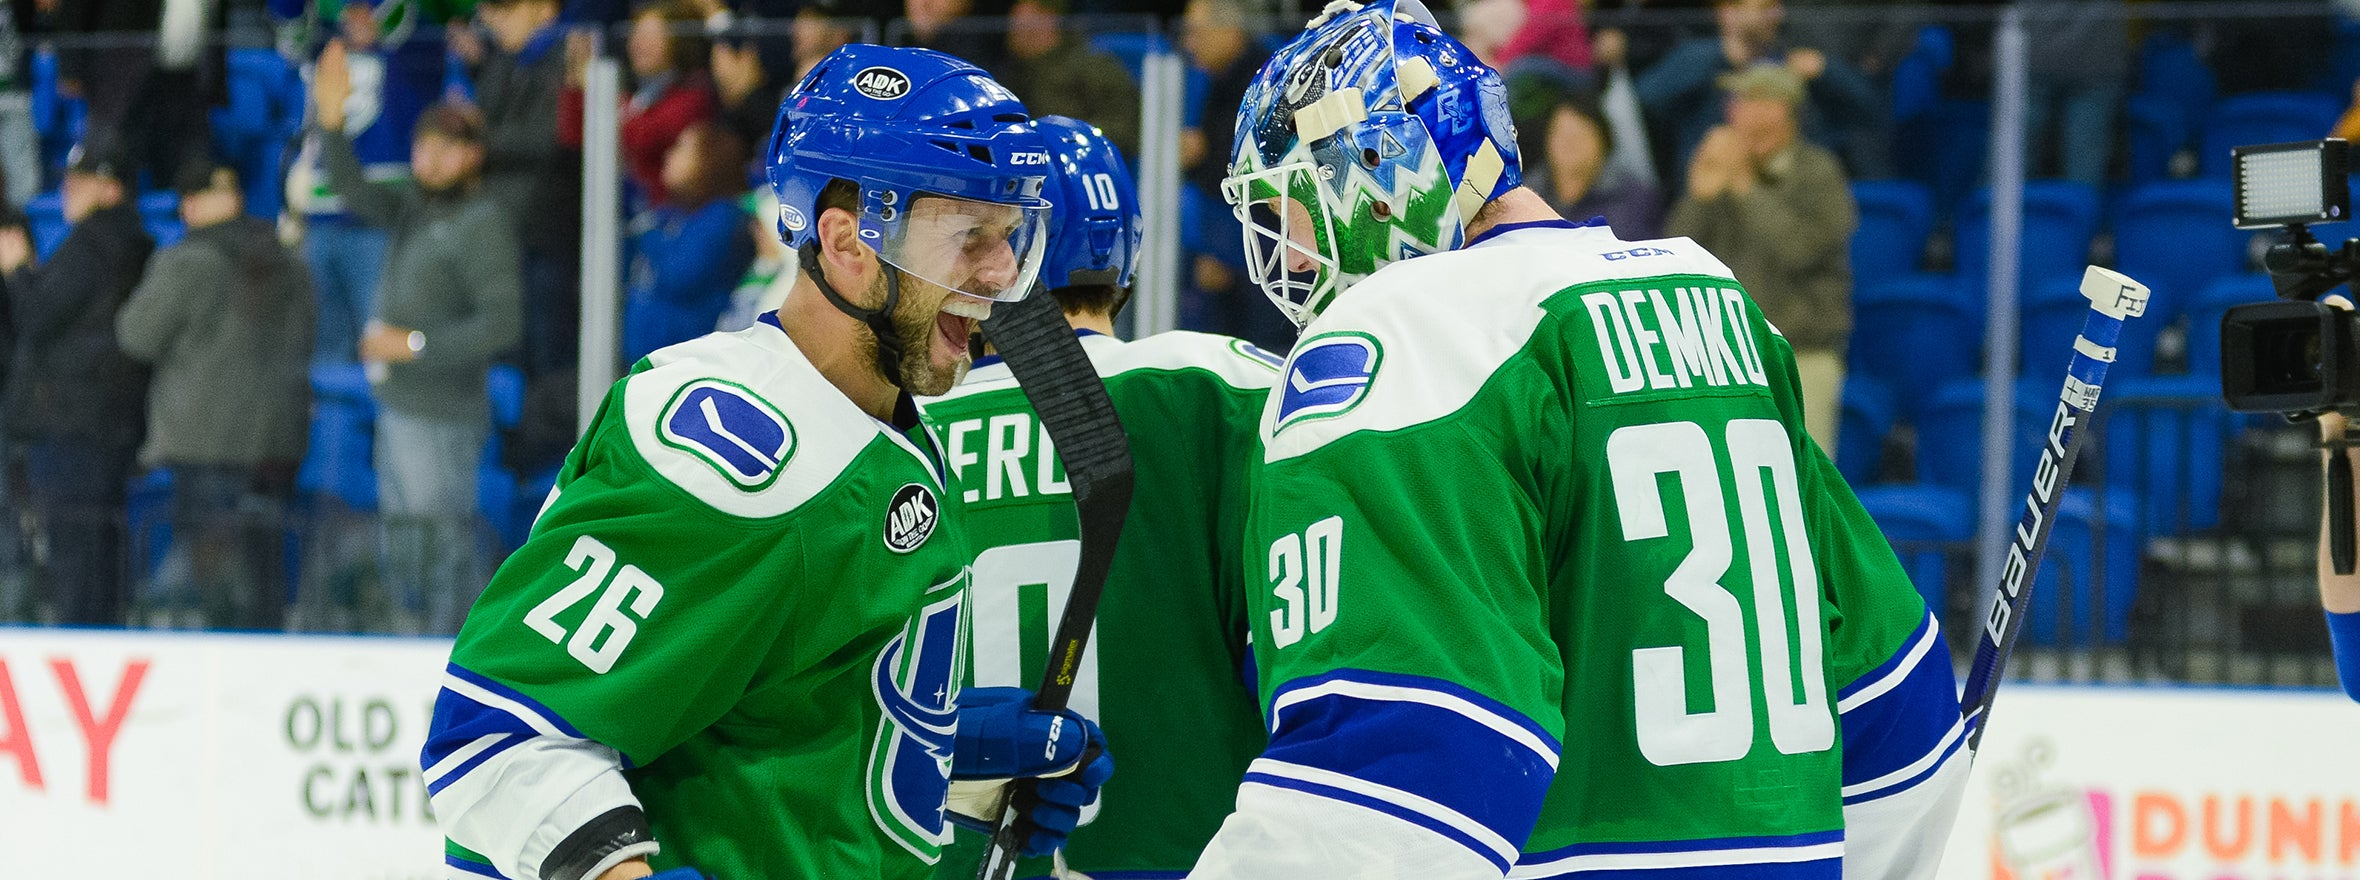 DEMKO, LATE SURGE LEAD COMETS TO VICTORY OVER LAVAL